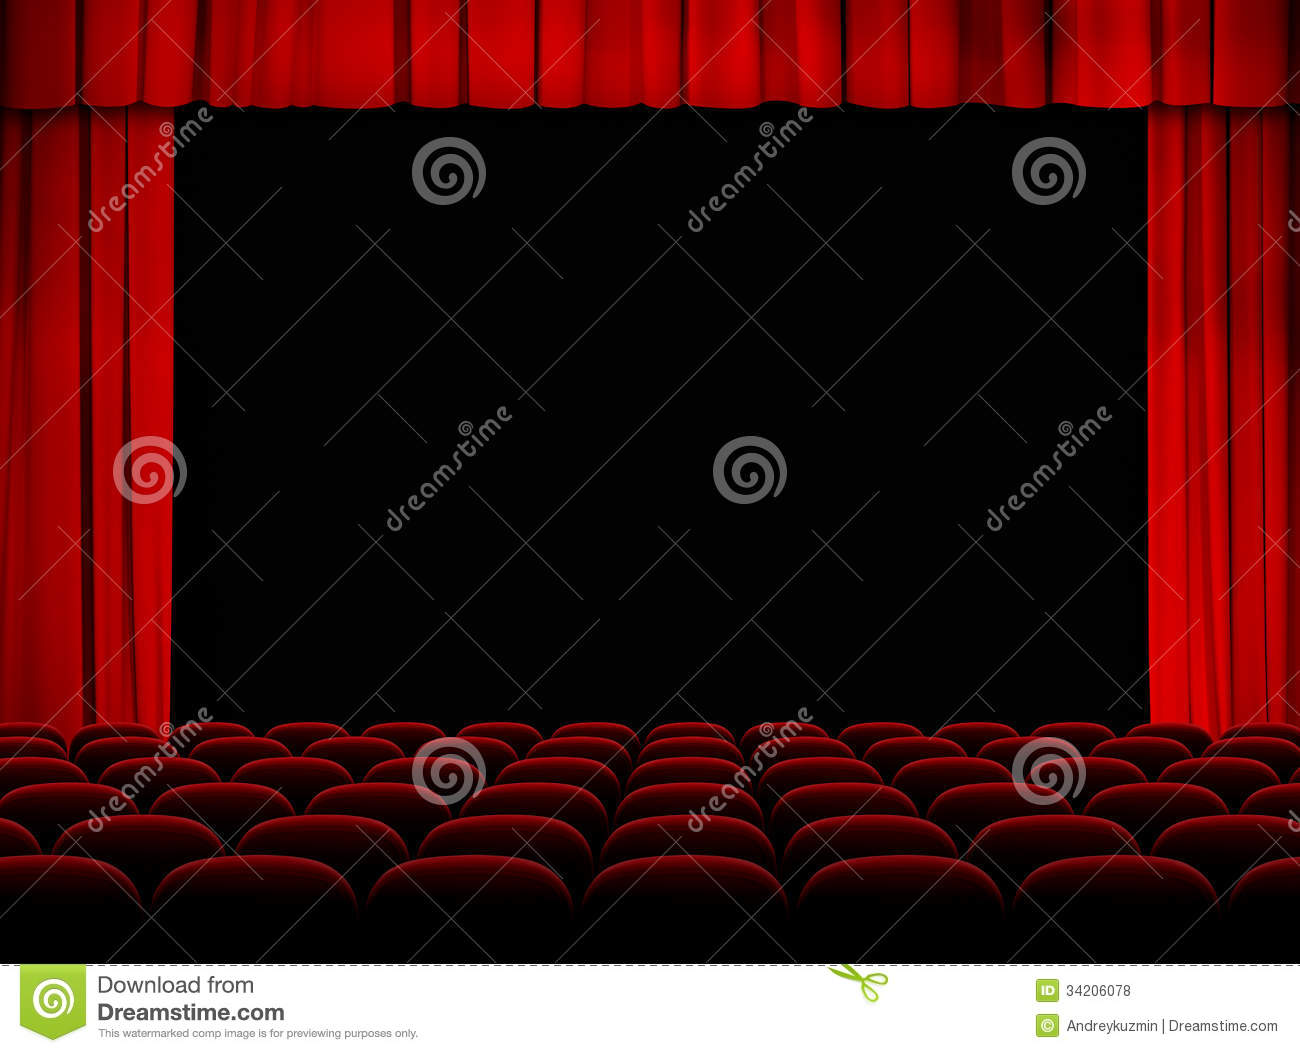 Theater auditorium with stage curtains and seats royalty free stock